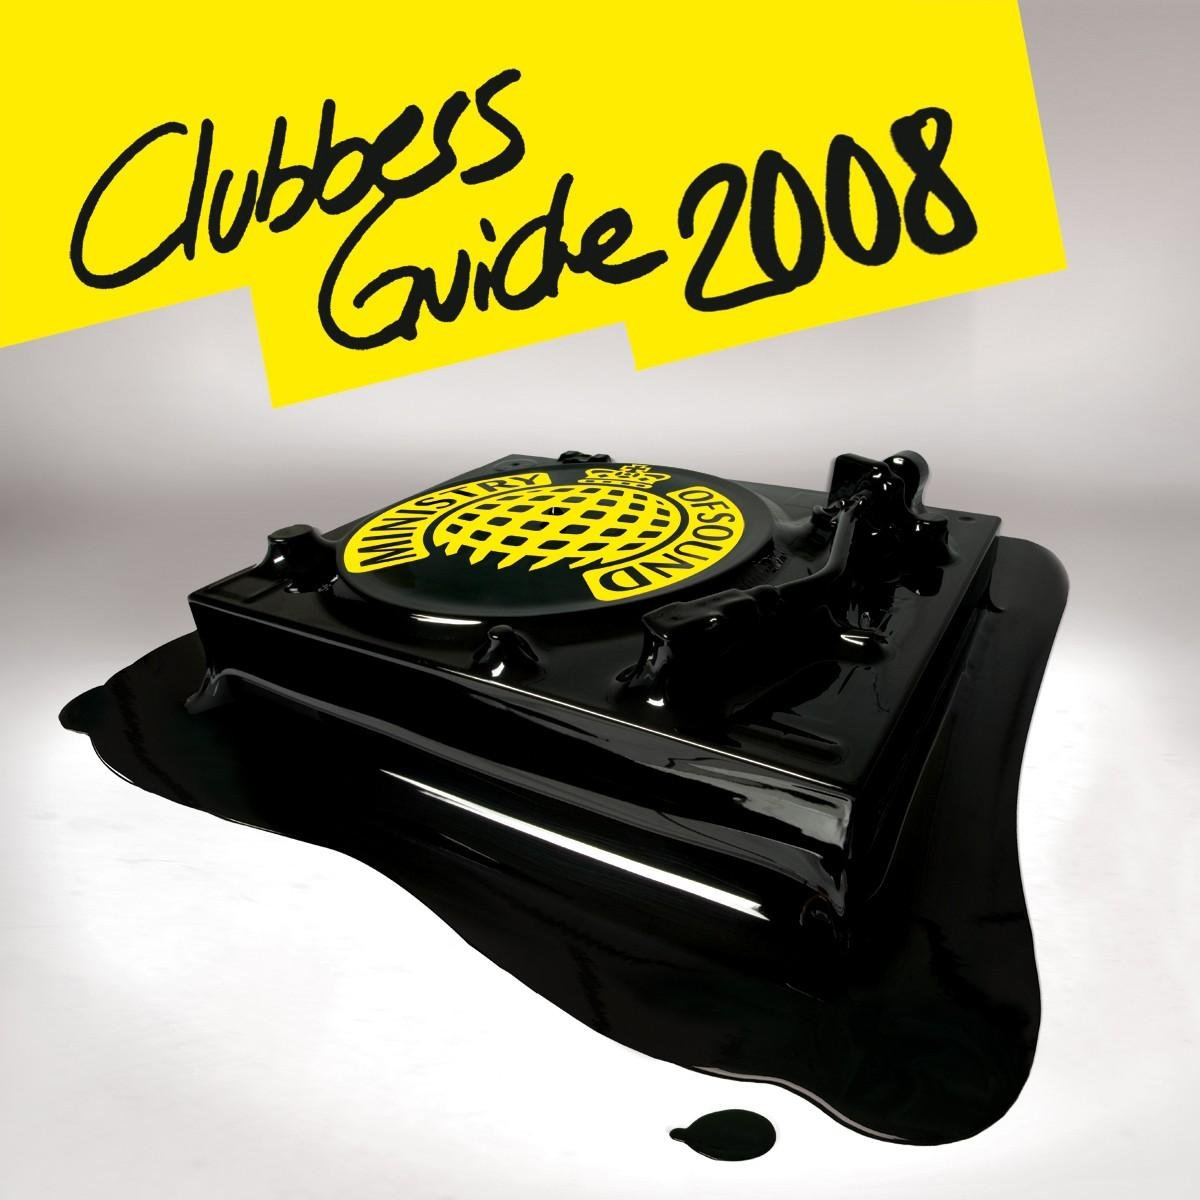 2008 Clubbers Guide (German) [Audio CD] Various